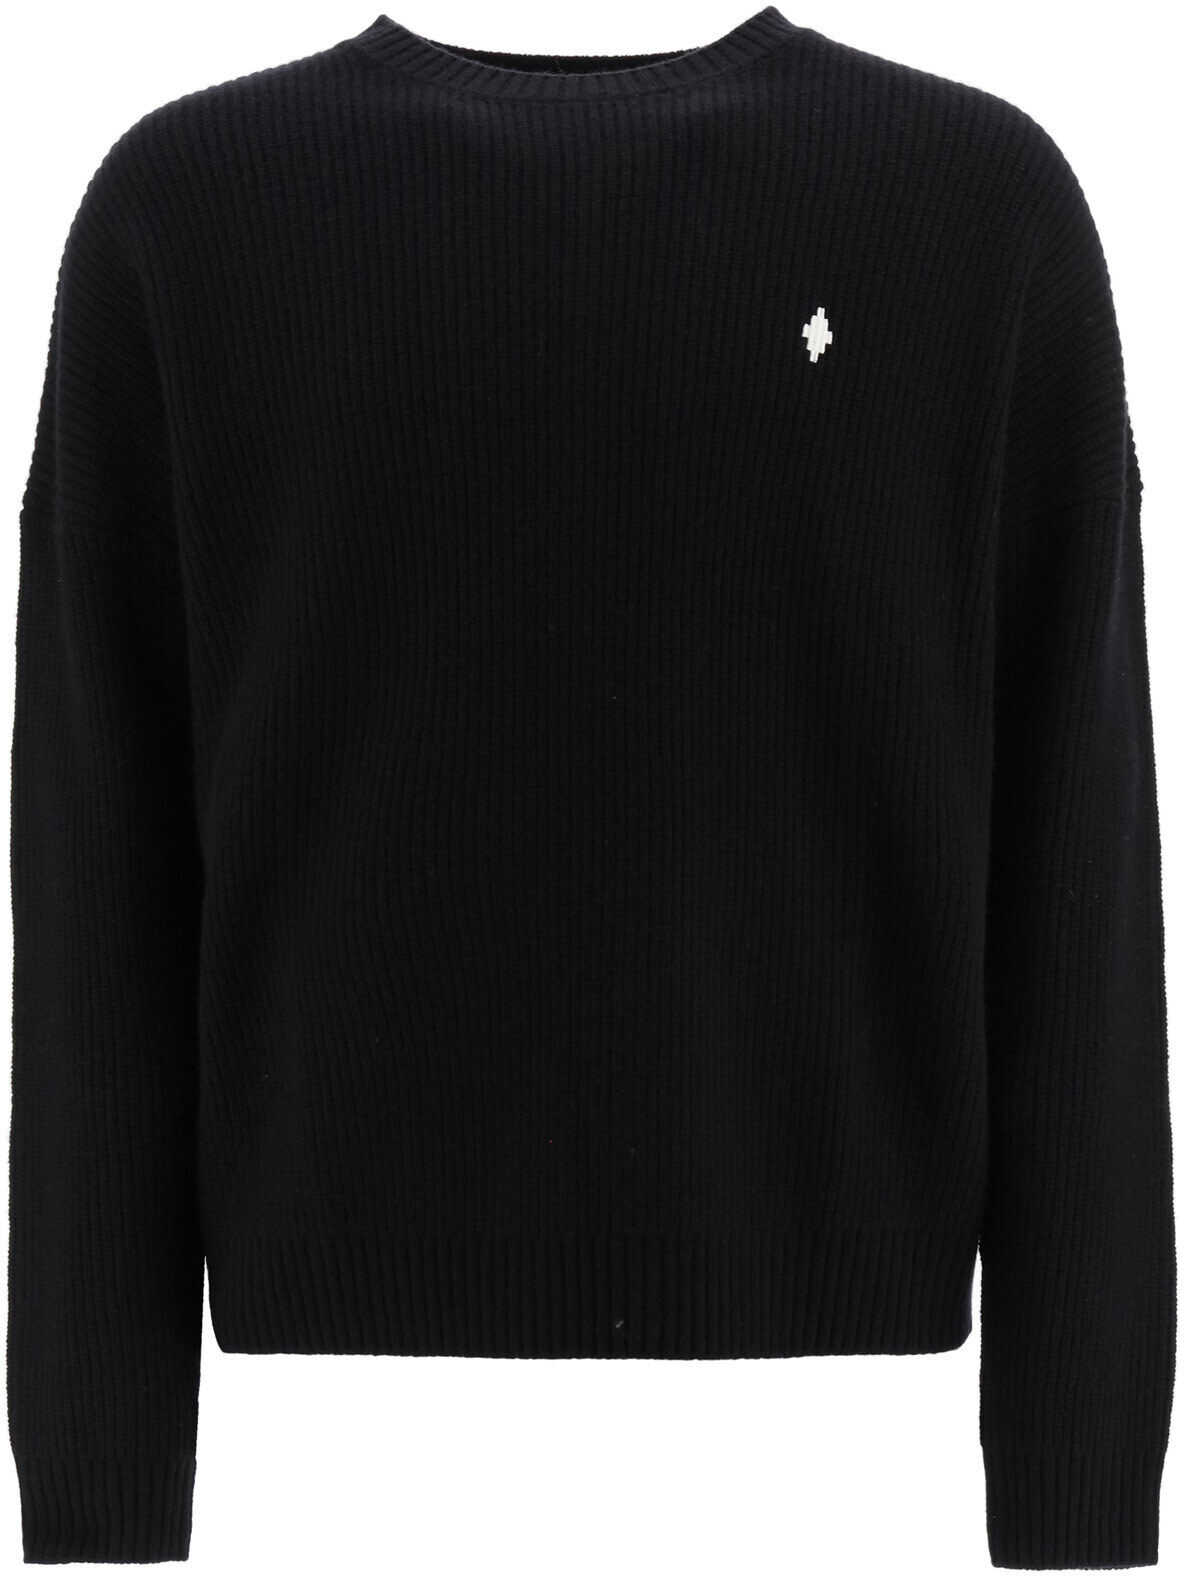 Marcelo Burlon Sweater With Mbcm Patch BLACK WHITE imagine